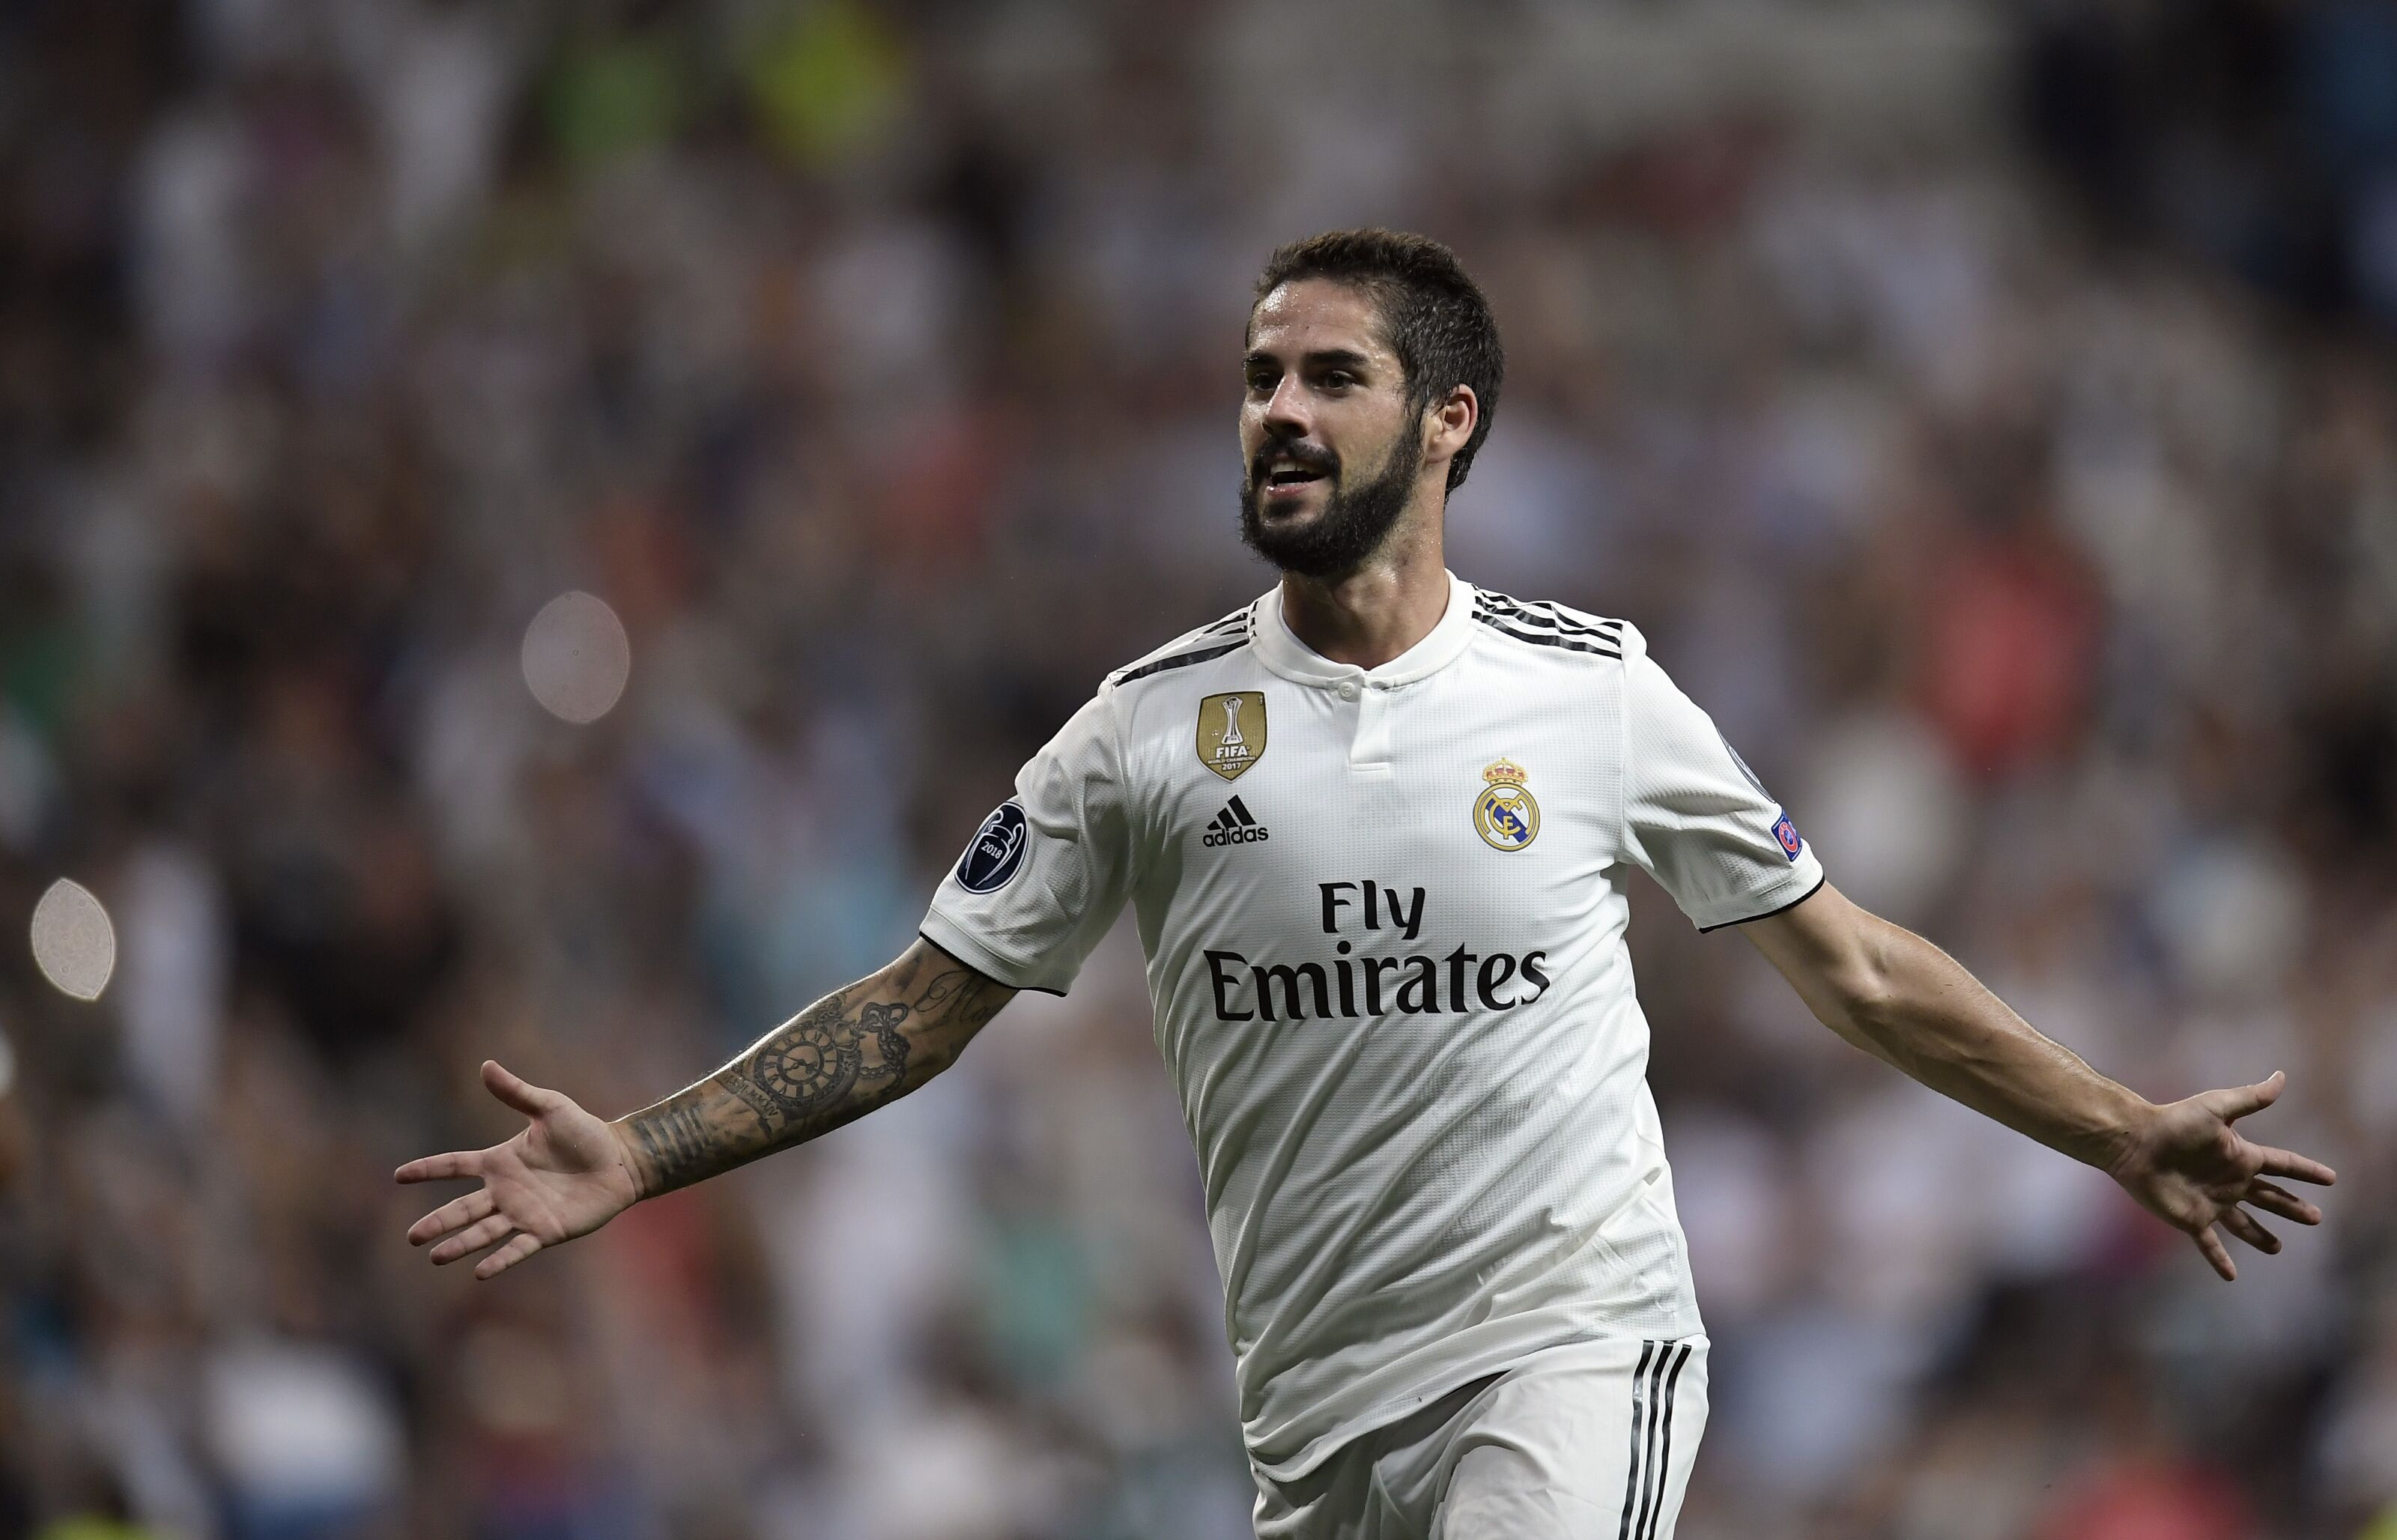 Be skeptical of reports linking Real Madrid's Isco to Arsenal